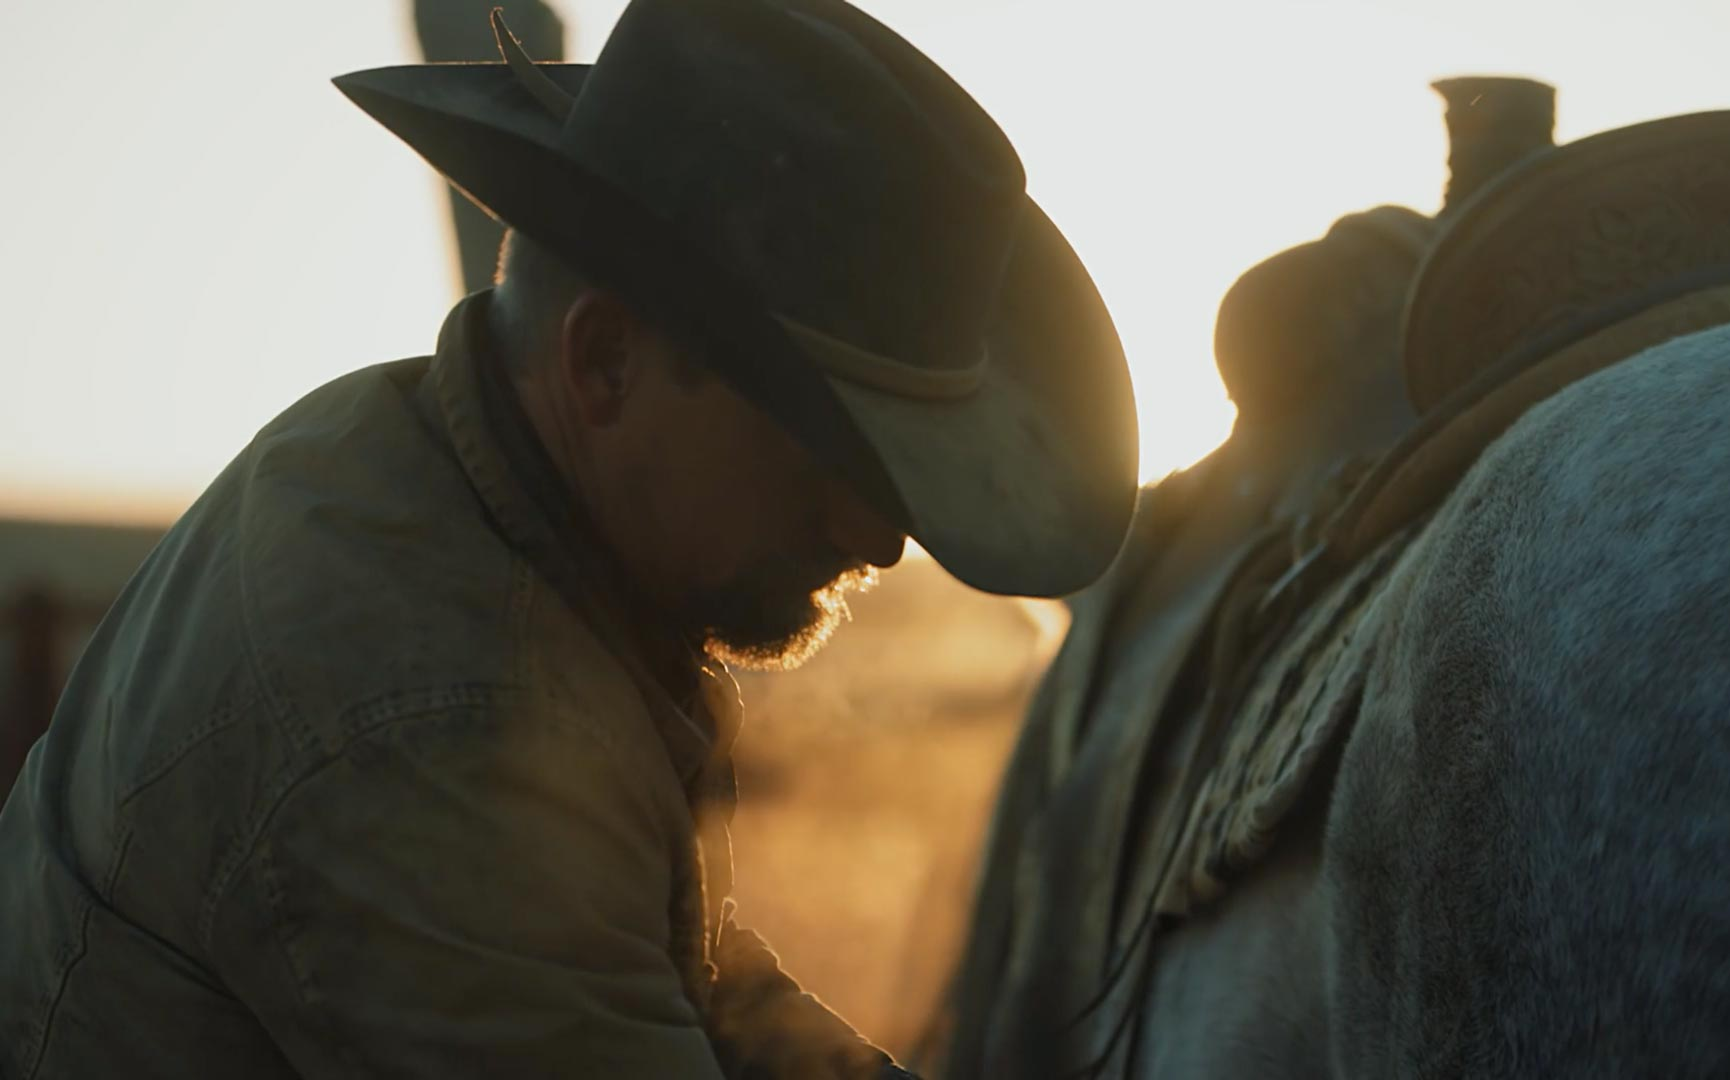 Close up of rancher adjust saddle on horse silhouetted against a sunset.